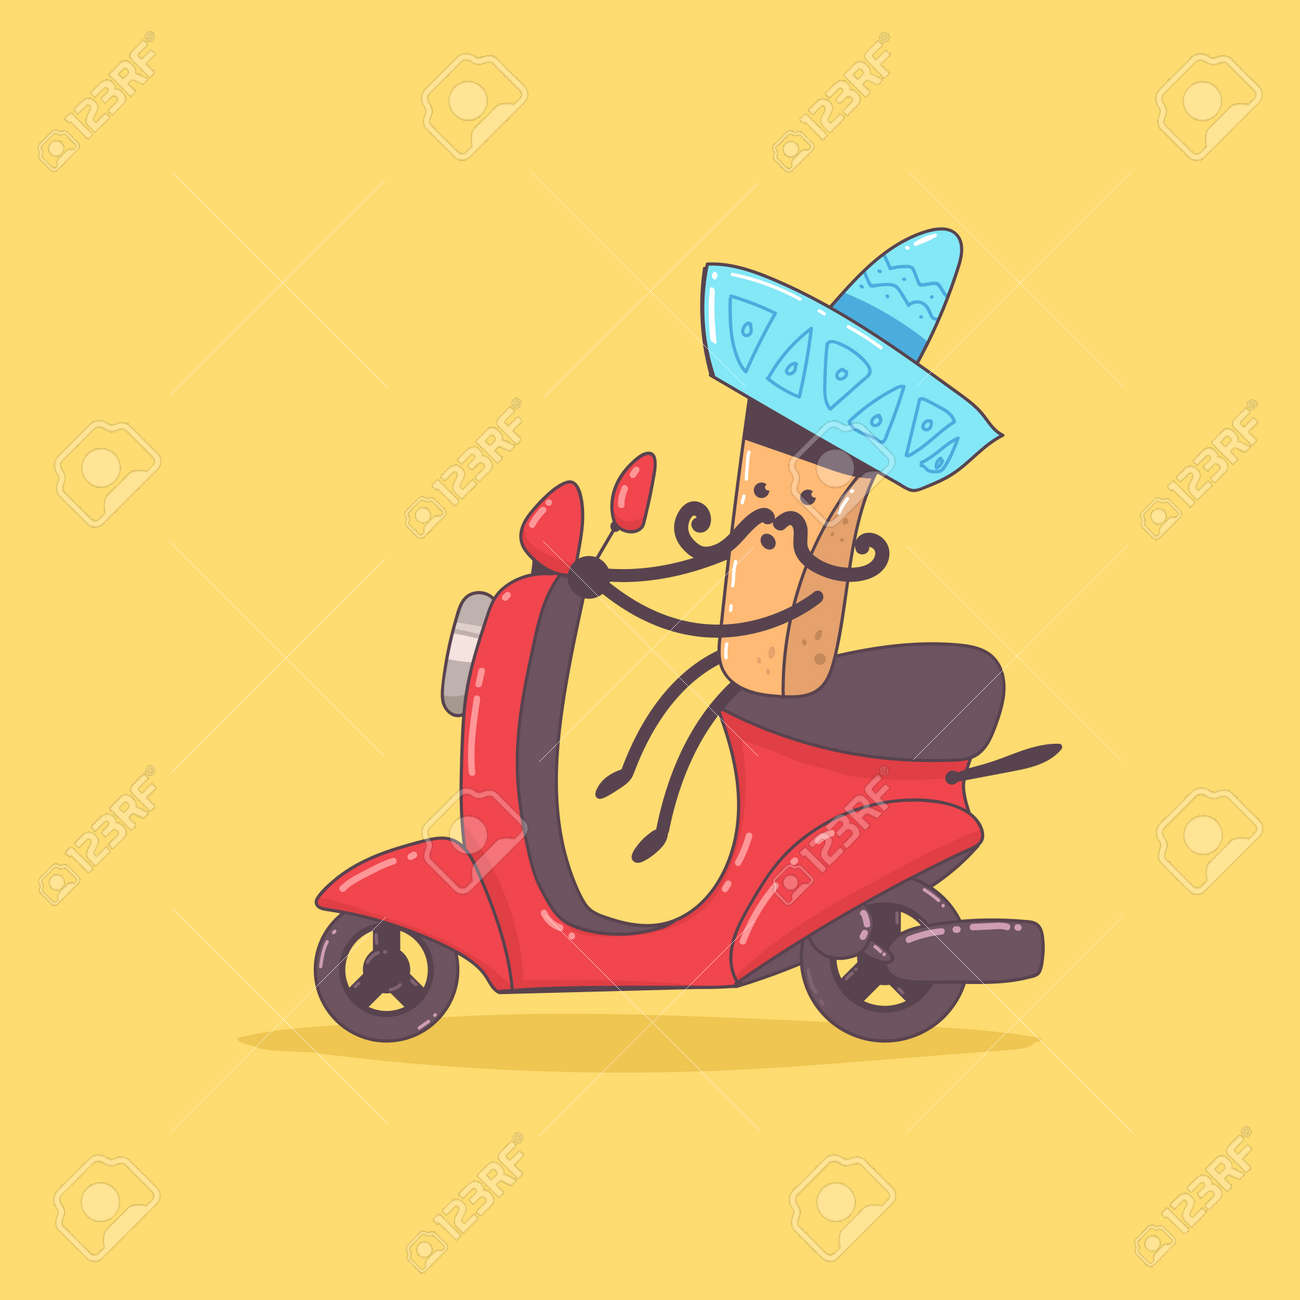 Mexican food delivery. Cute courier character on the moped. Vector cartoon illustration isolated on background. - 172749284